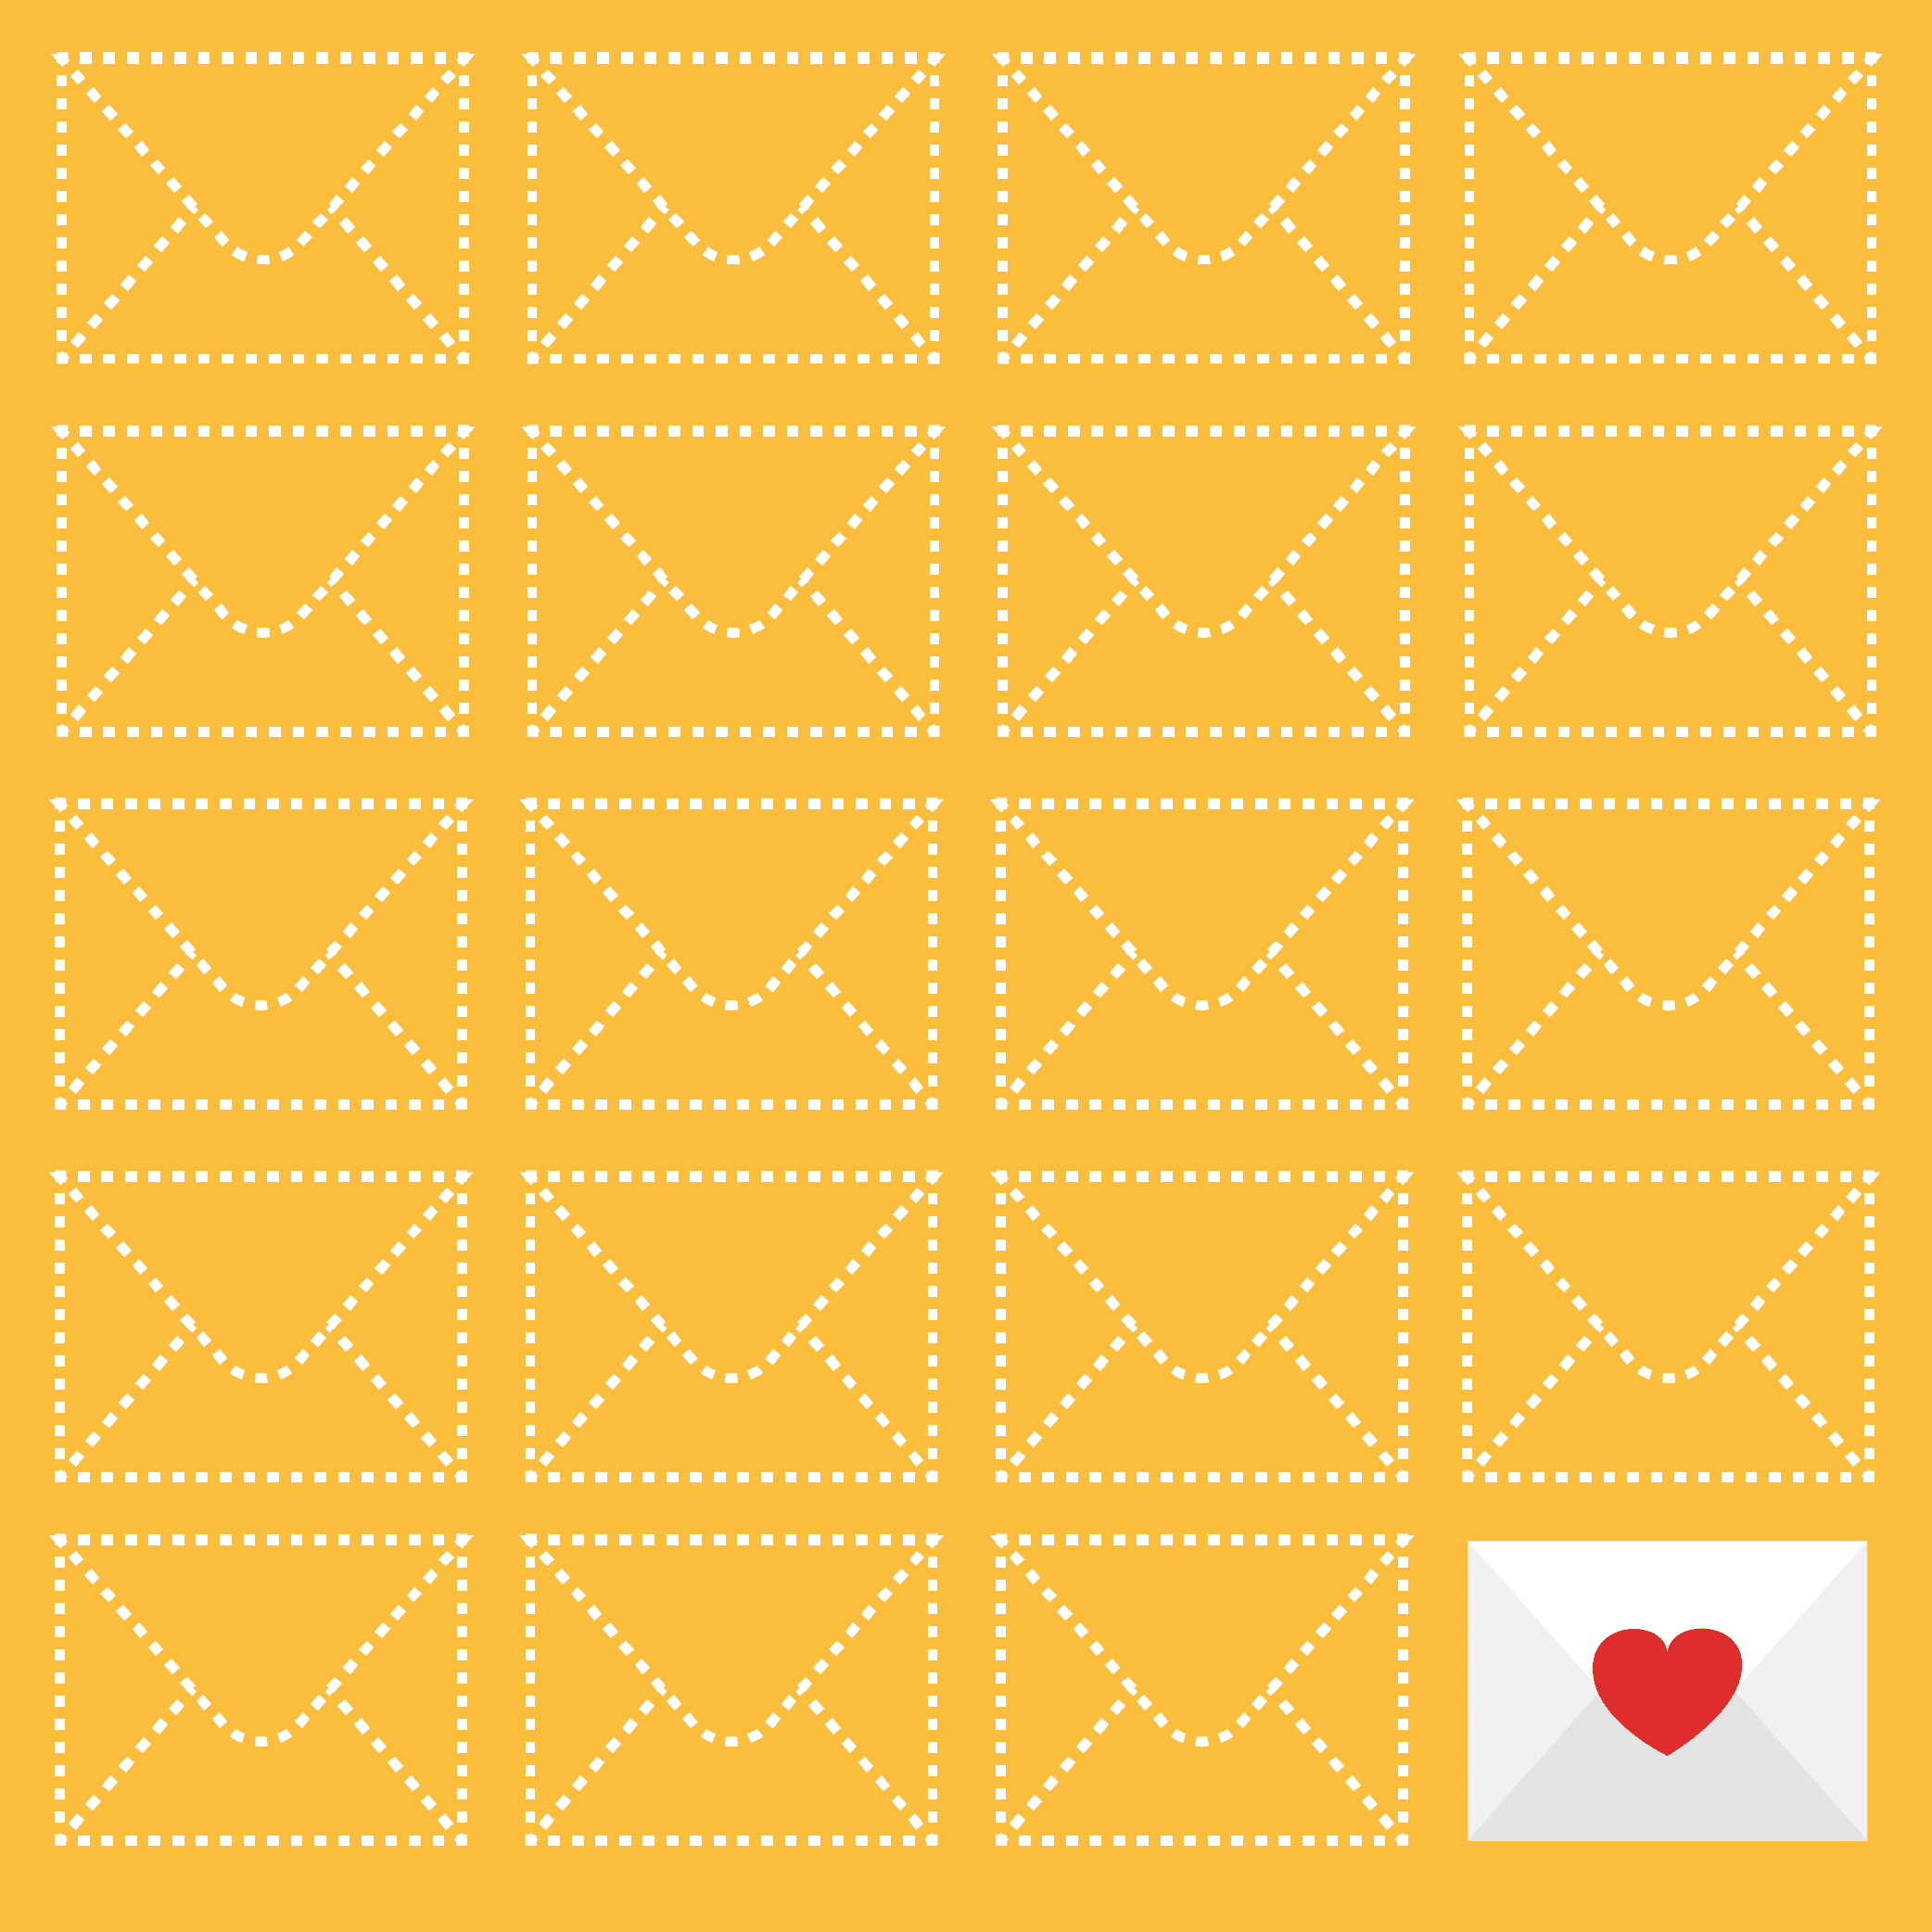 Illustration of envelopes, one with a heart on it.